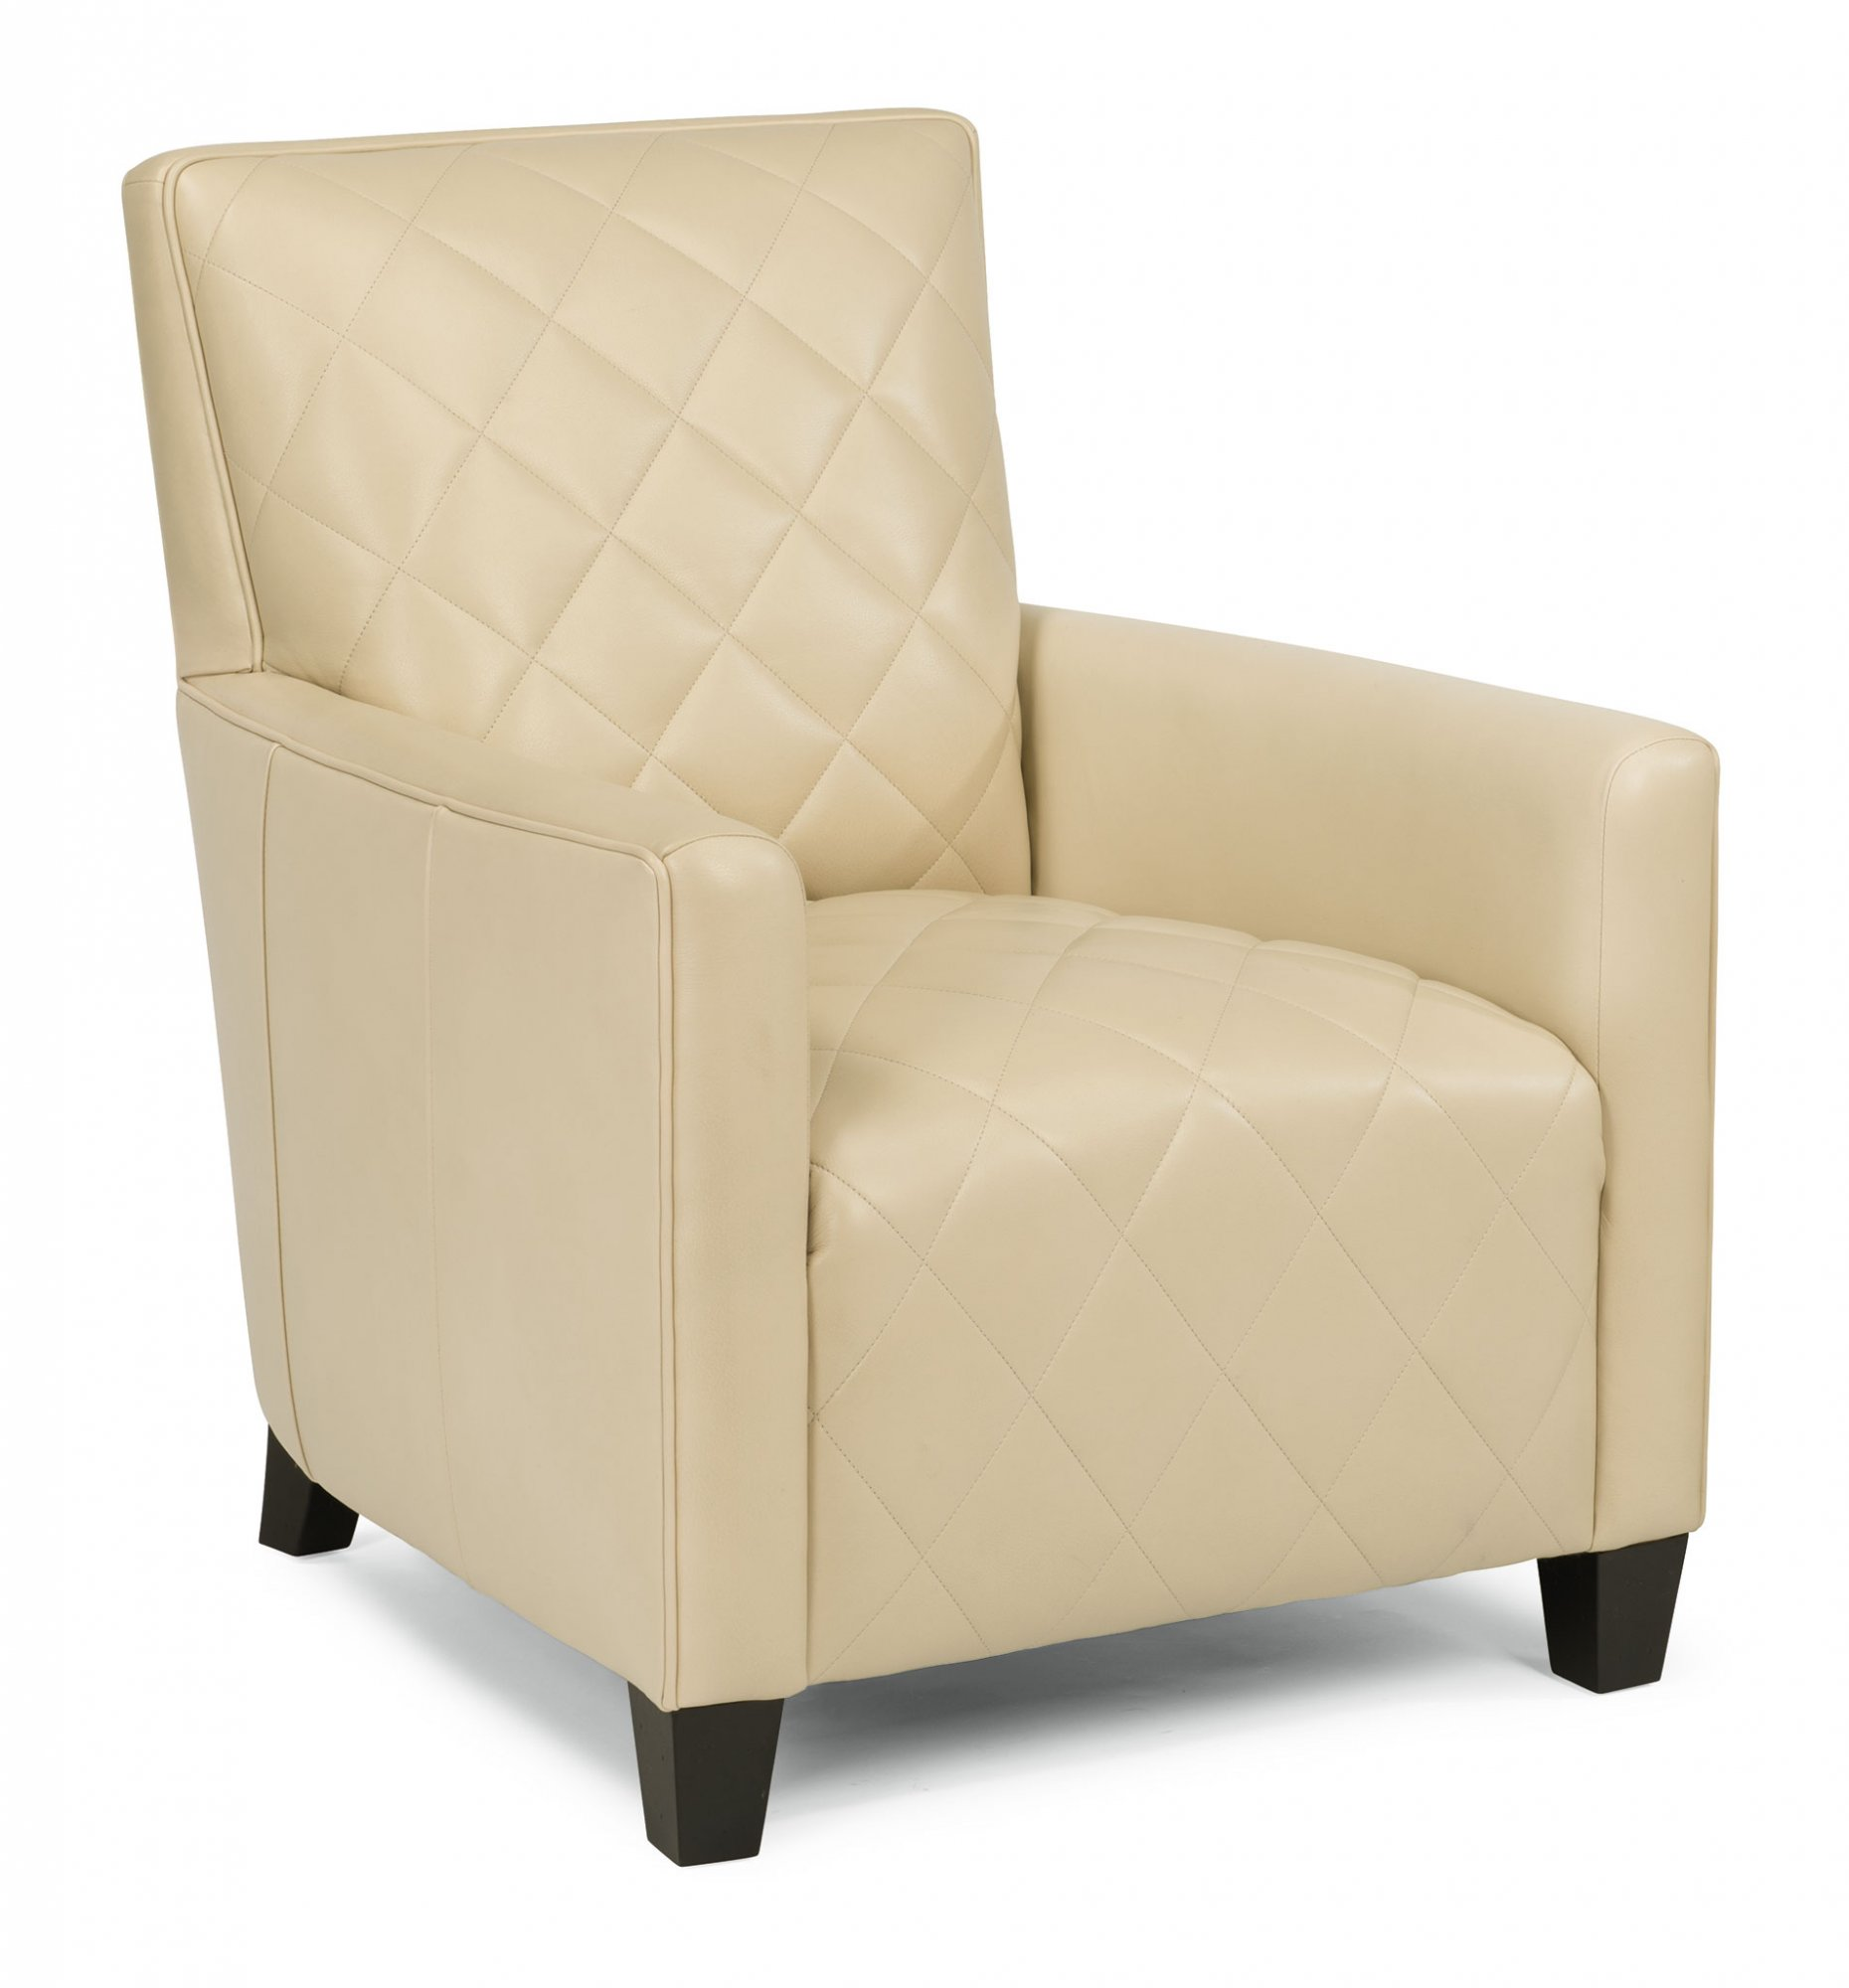 Chairs for Home Chairs with Ottoman Furniture